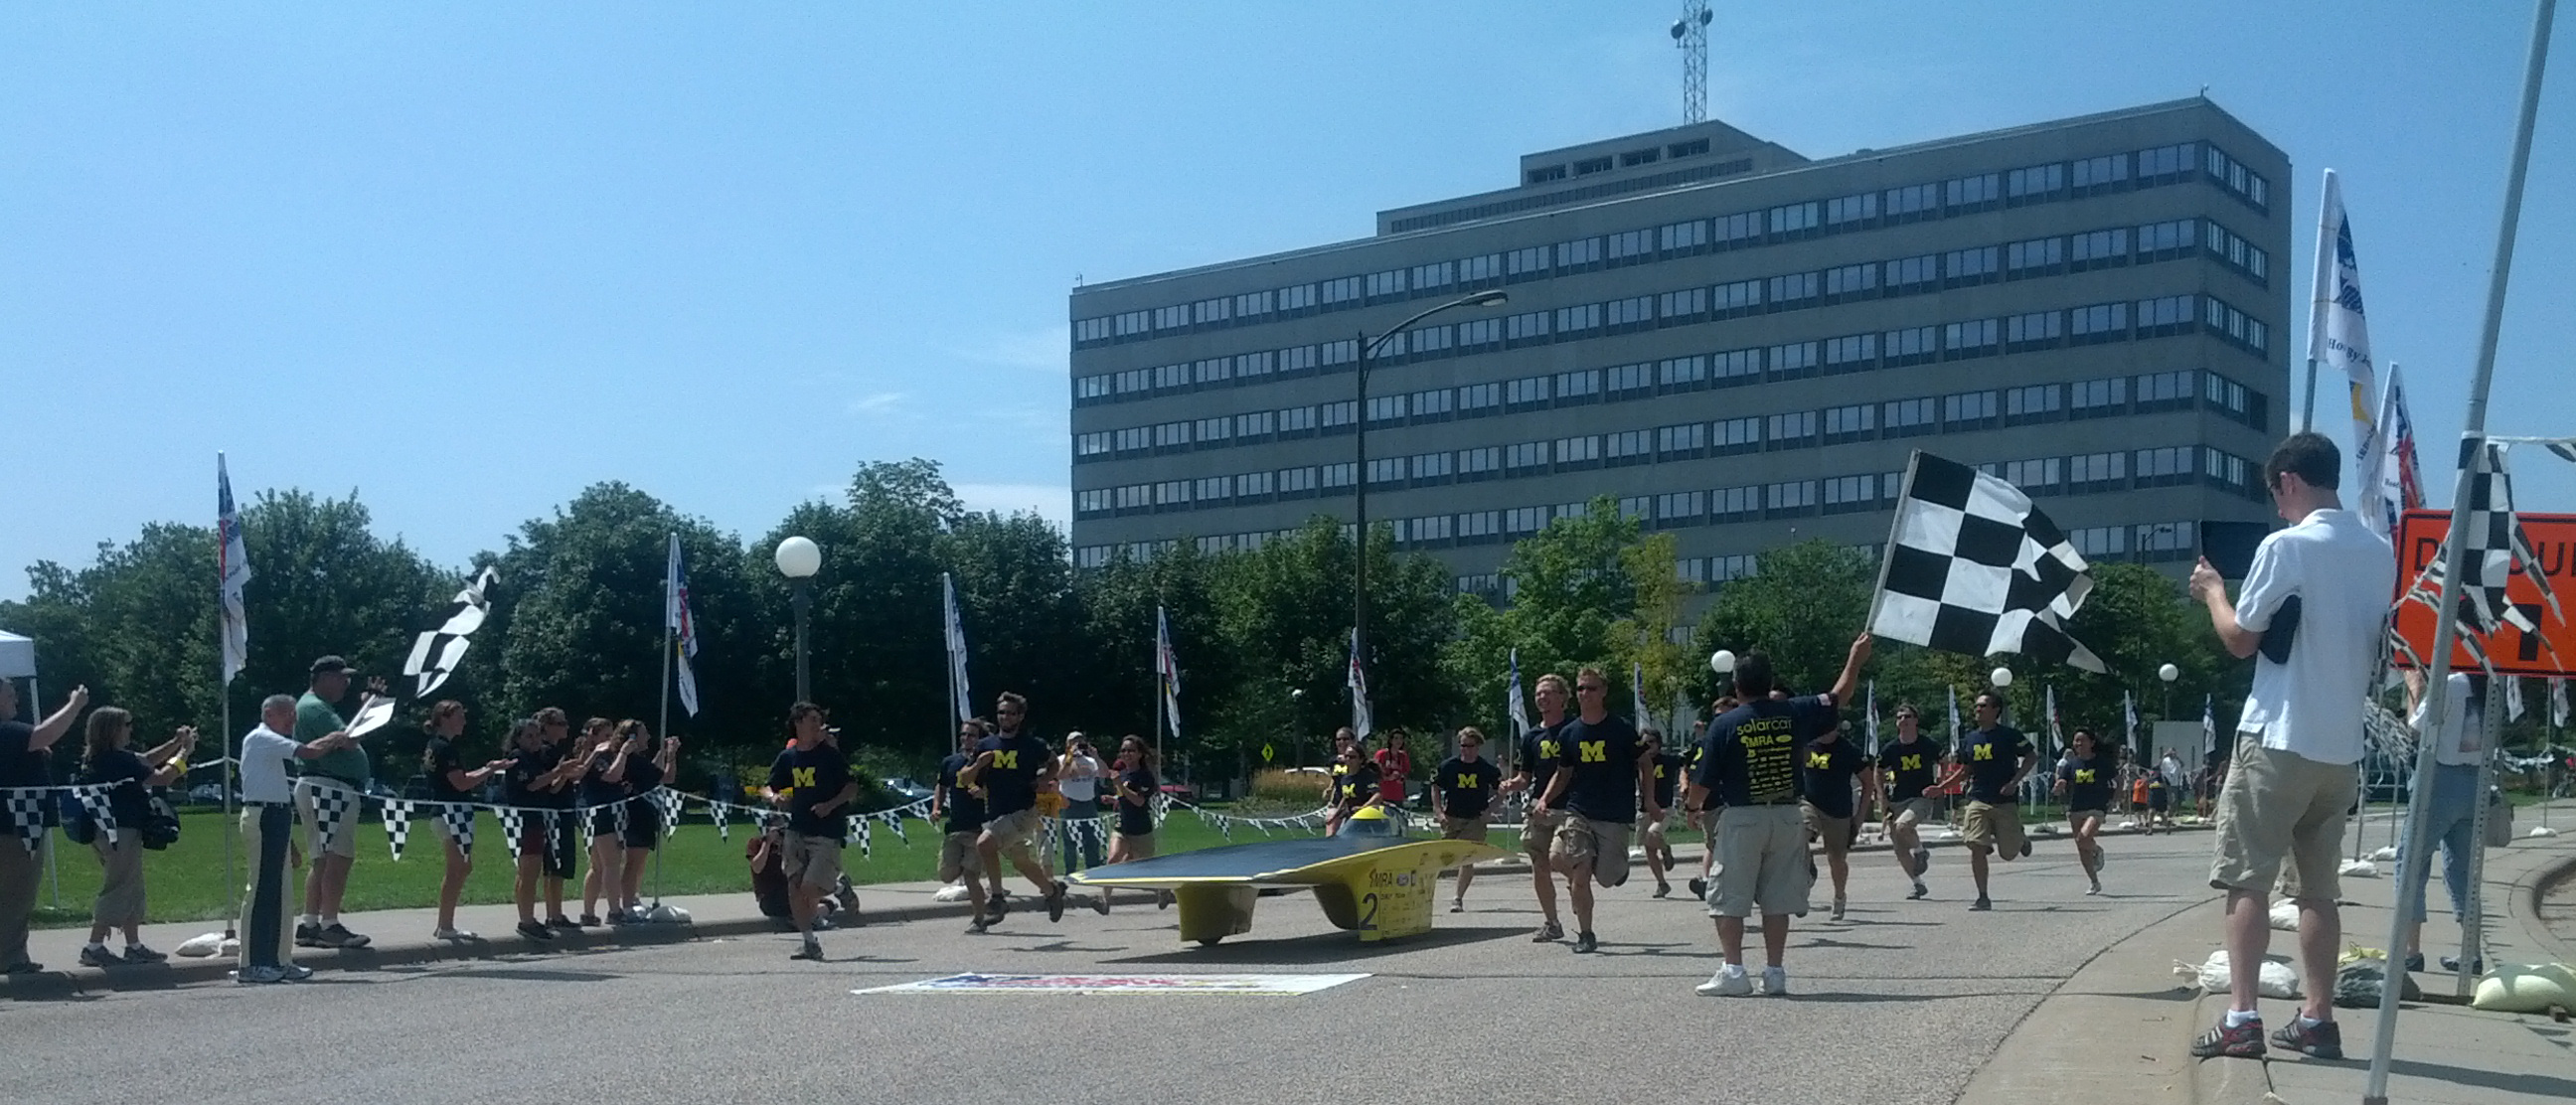 The University of Michigan Solar Car Team, with its car Quantum, crosses the finish line at 2:30pm on July 21, 2012 at the American Solar Car Challenge in St Paul, Minn.. The team won its fourth consecutive national championship with this event (and 7th overall), and broke the national record, winning by 10 hours and 18 minutes over its nearest competitor. Image credit: Ethan Lardner, U-M Solar Car Team